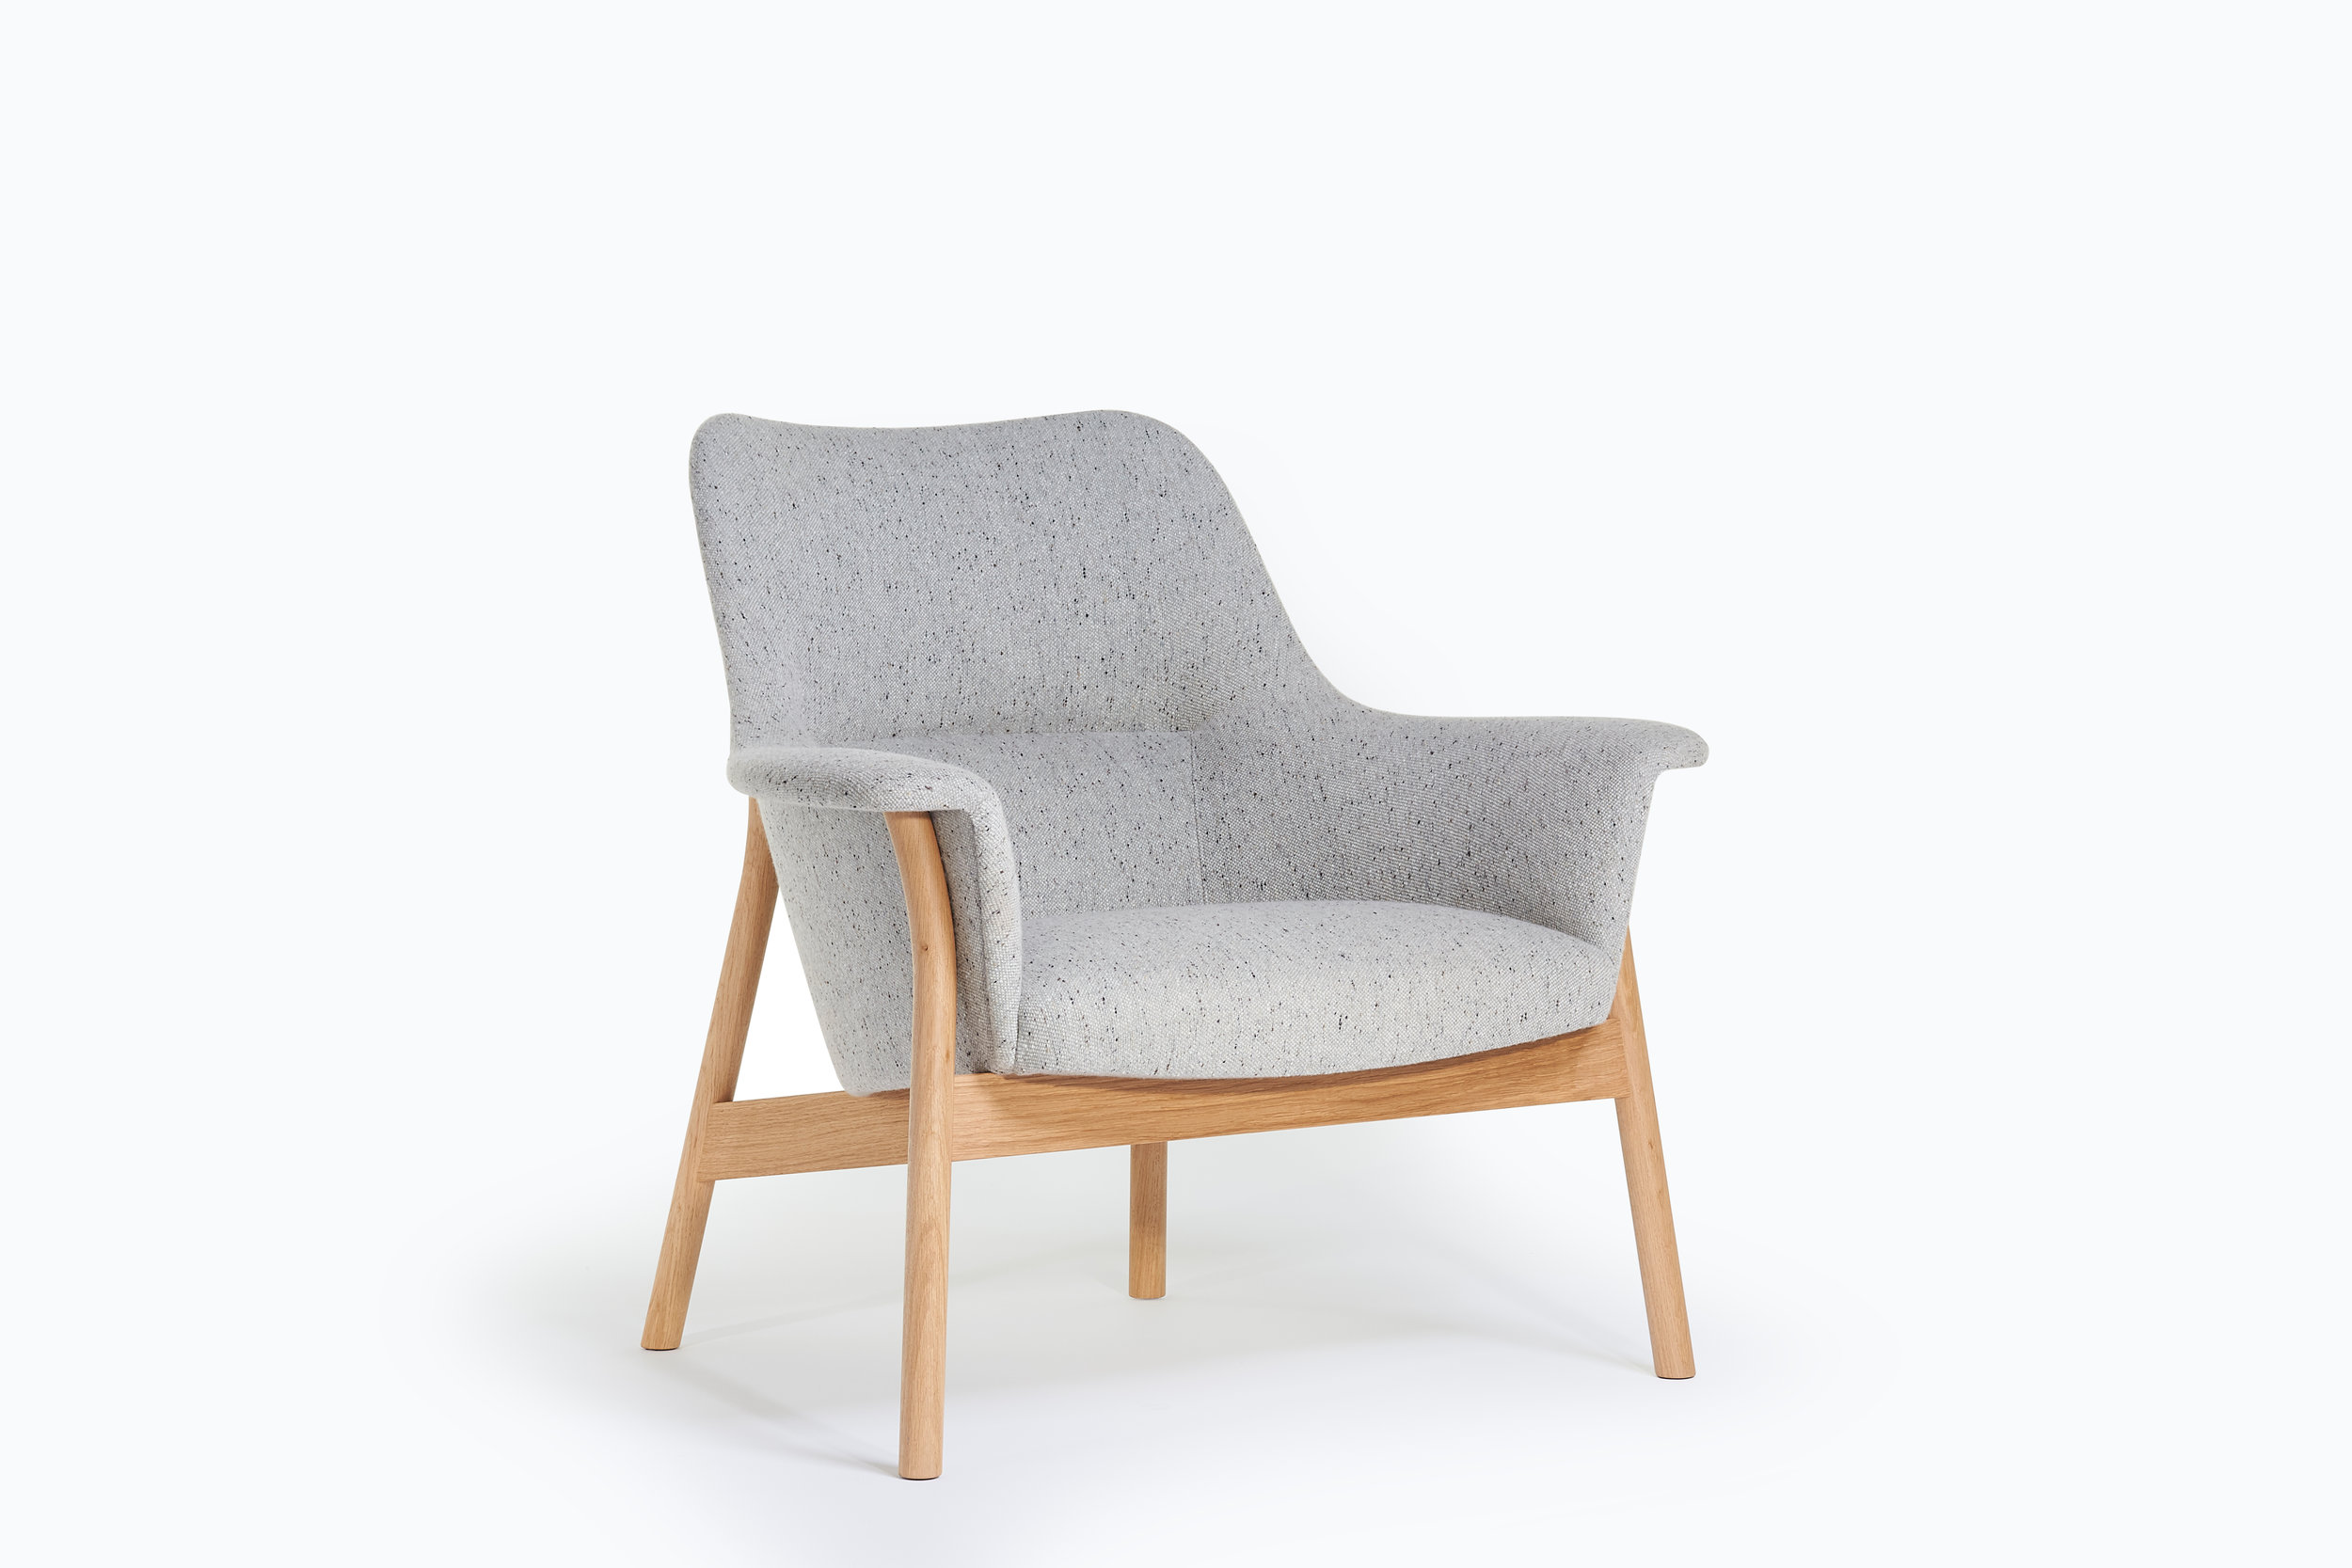 Oak and upholstered Oxbow lounge chair